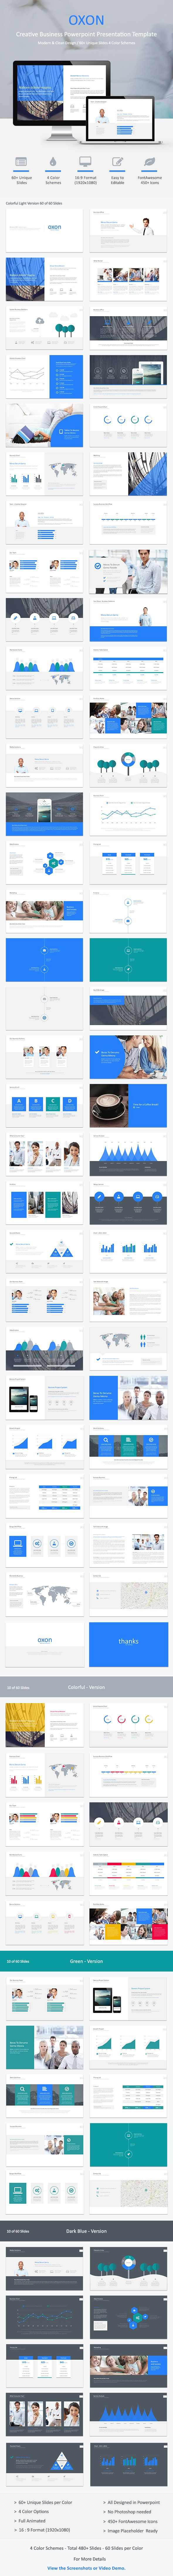 Oxon - Powerpoint Business Template #powerpoint #powerpointtemplate #presentation Download: http://graphicriver.net/item/oxon-powerpoint-business-template/9692457?ref=ksioks